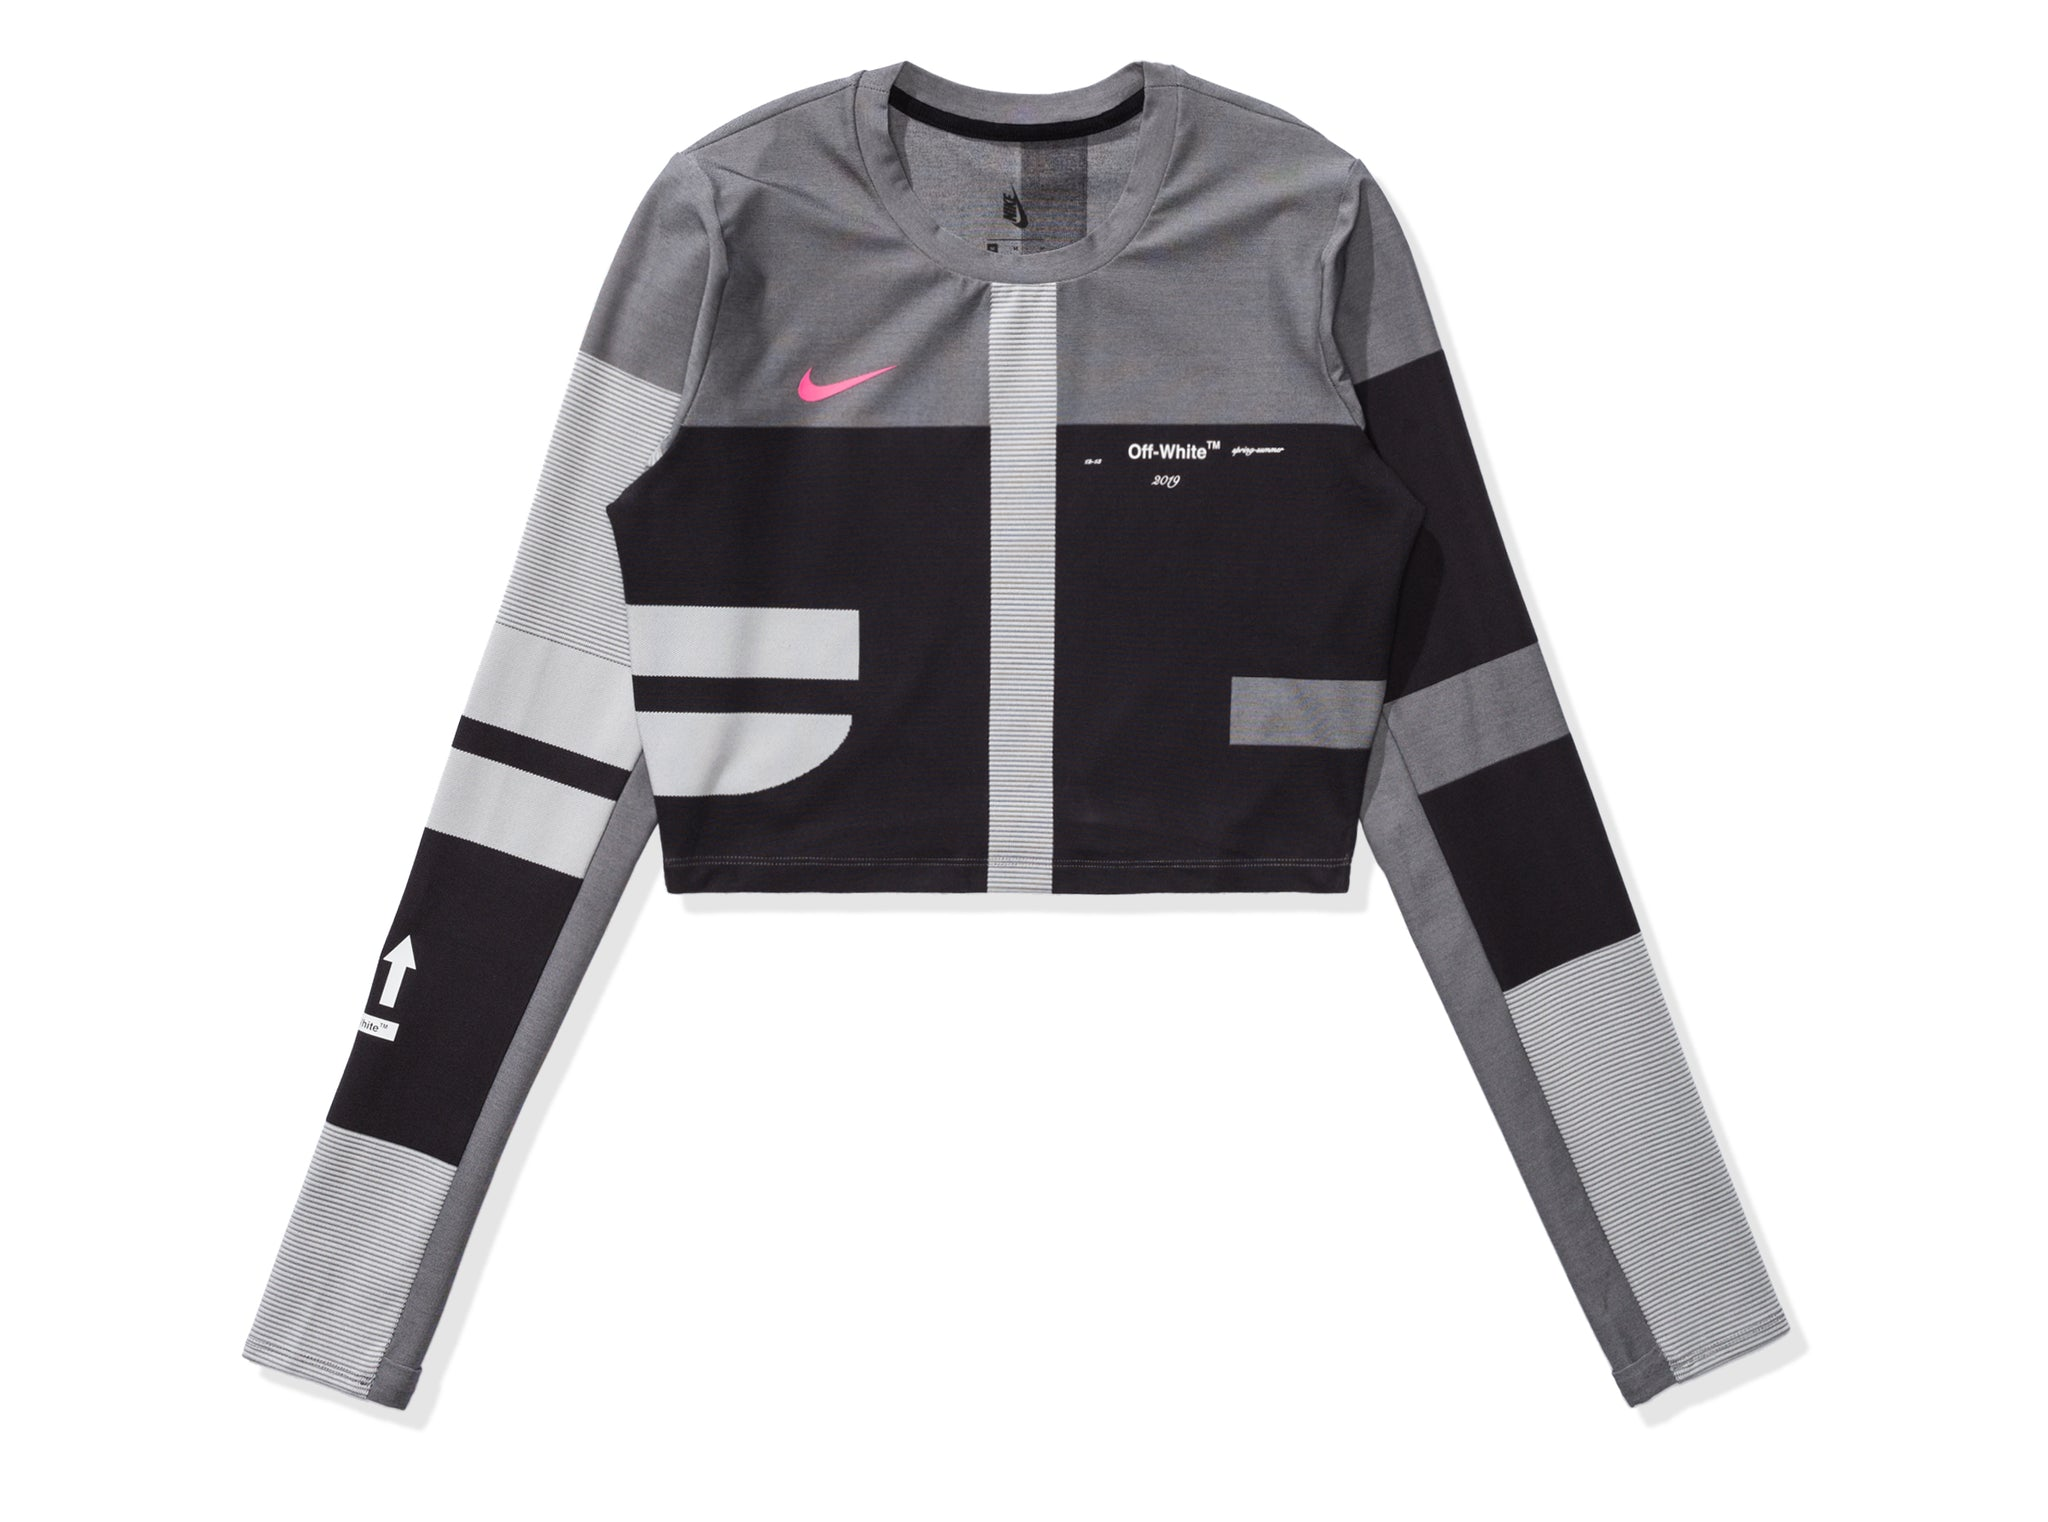 NIKE X OFF-WHITE WOMEN'S EASY RUN TOP - BLACK